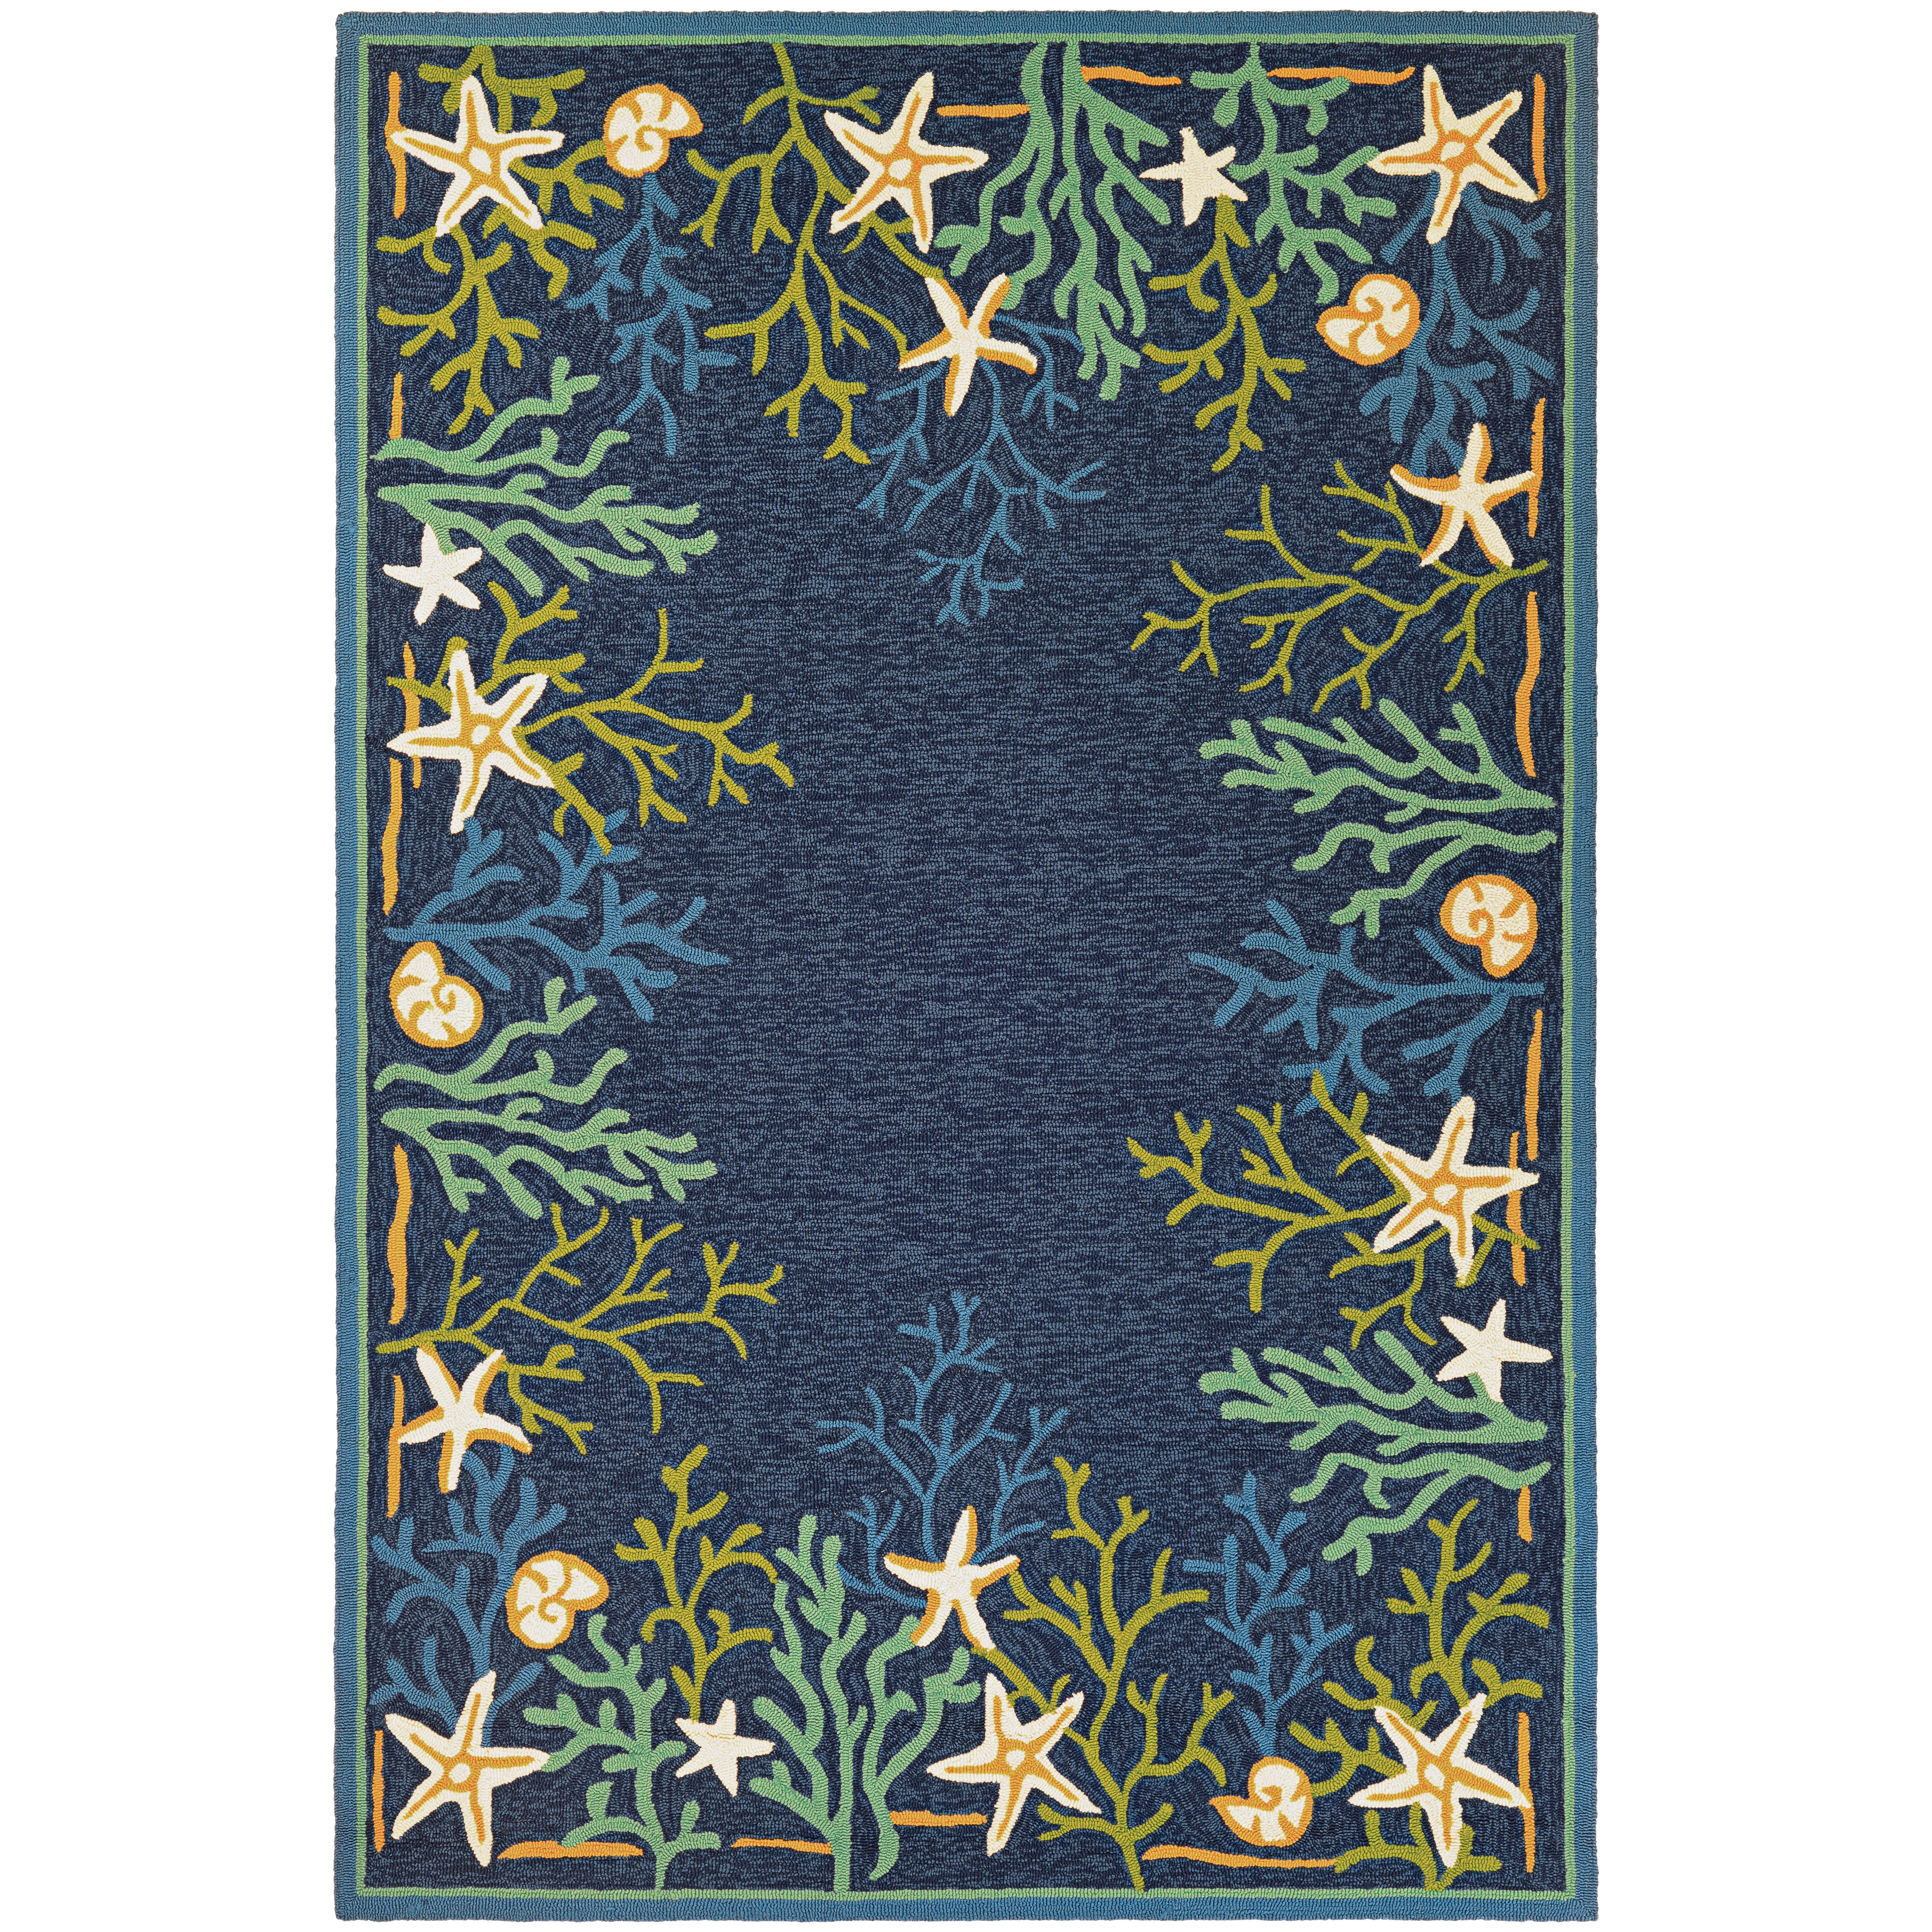 Picadilly Coral Reef Blue Green Indoor Outdoor Area Rug 8 X 11